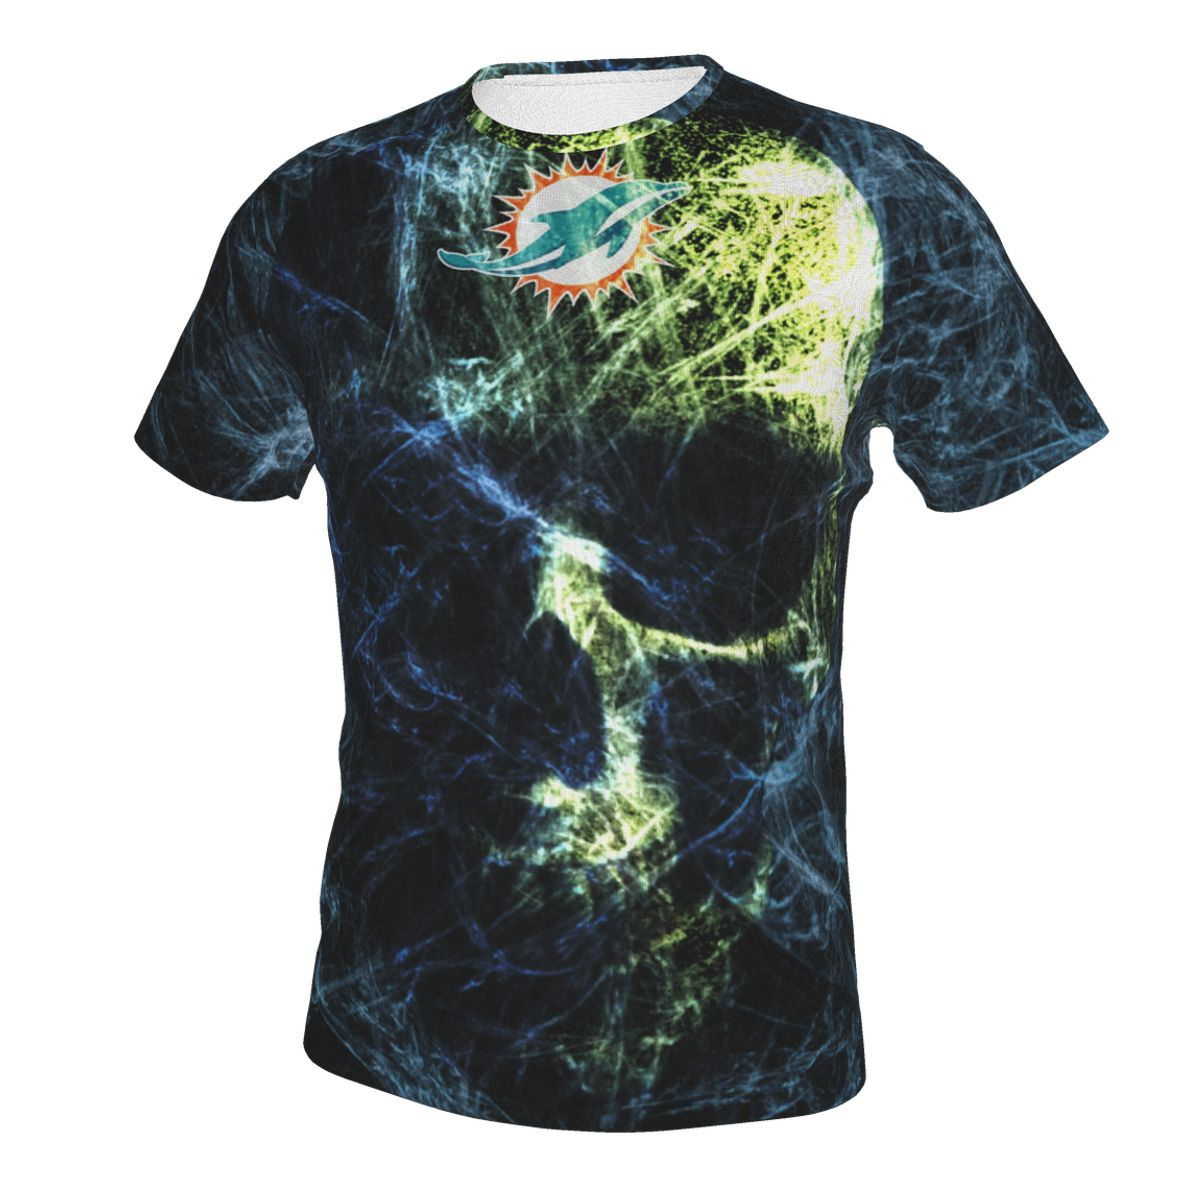 Dolphins T-shirts For Men